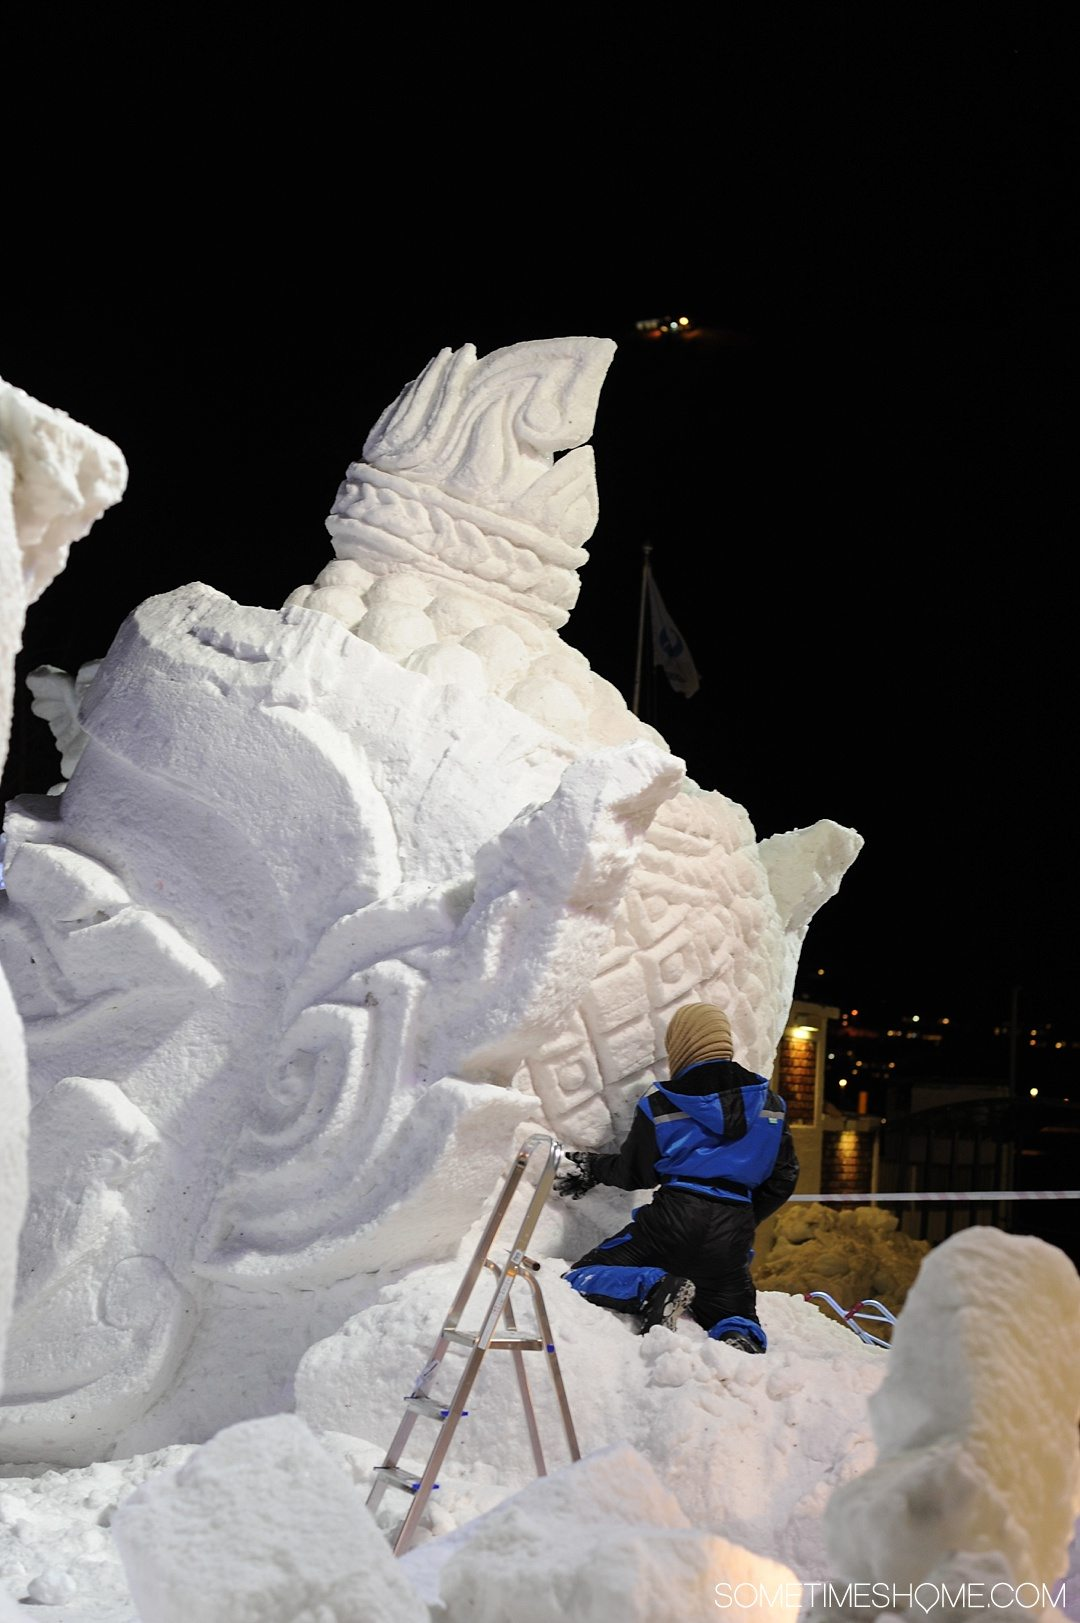 Reasons Why January is the Best Time to Visit Norway with a photo of an ice sculpture competition in Tromso.